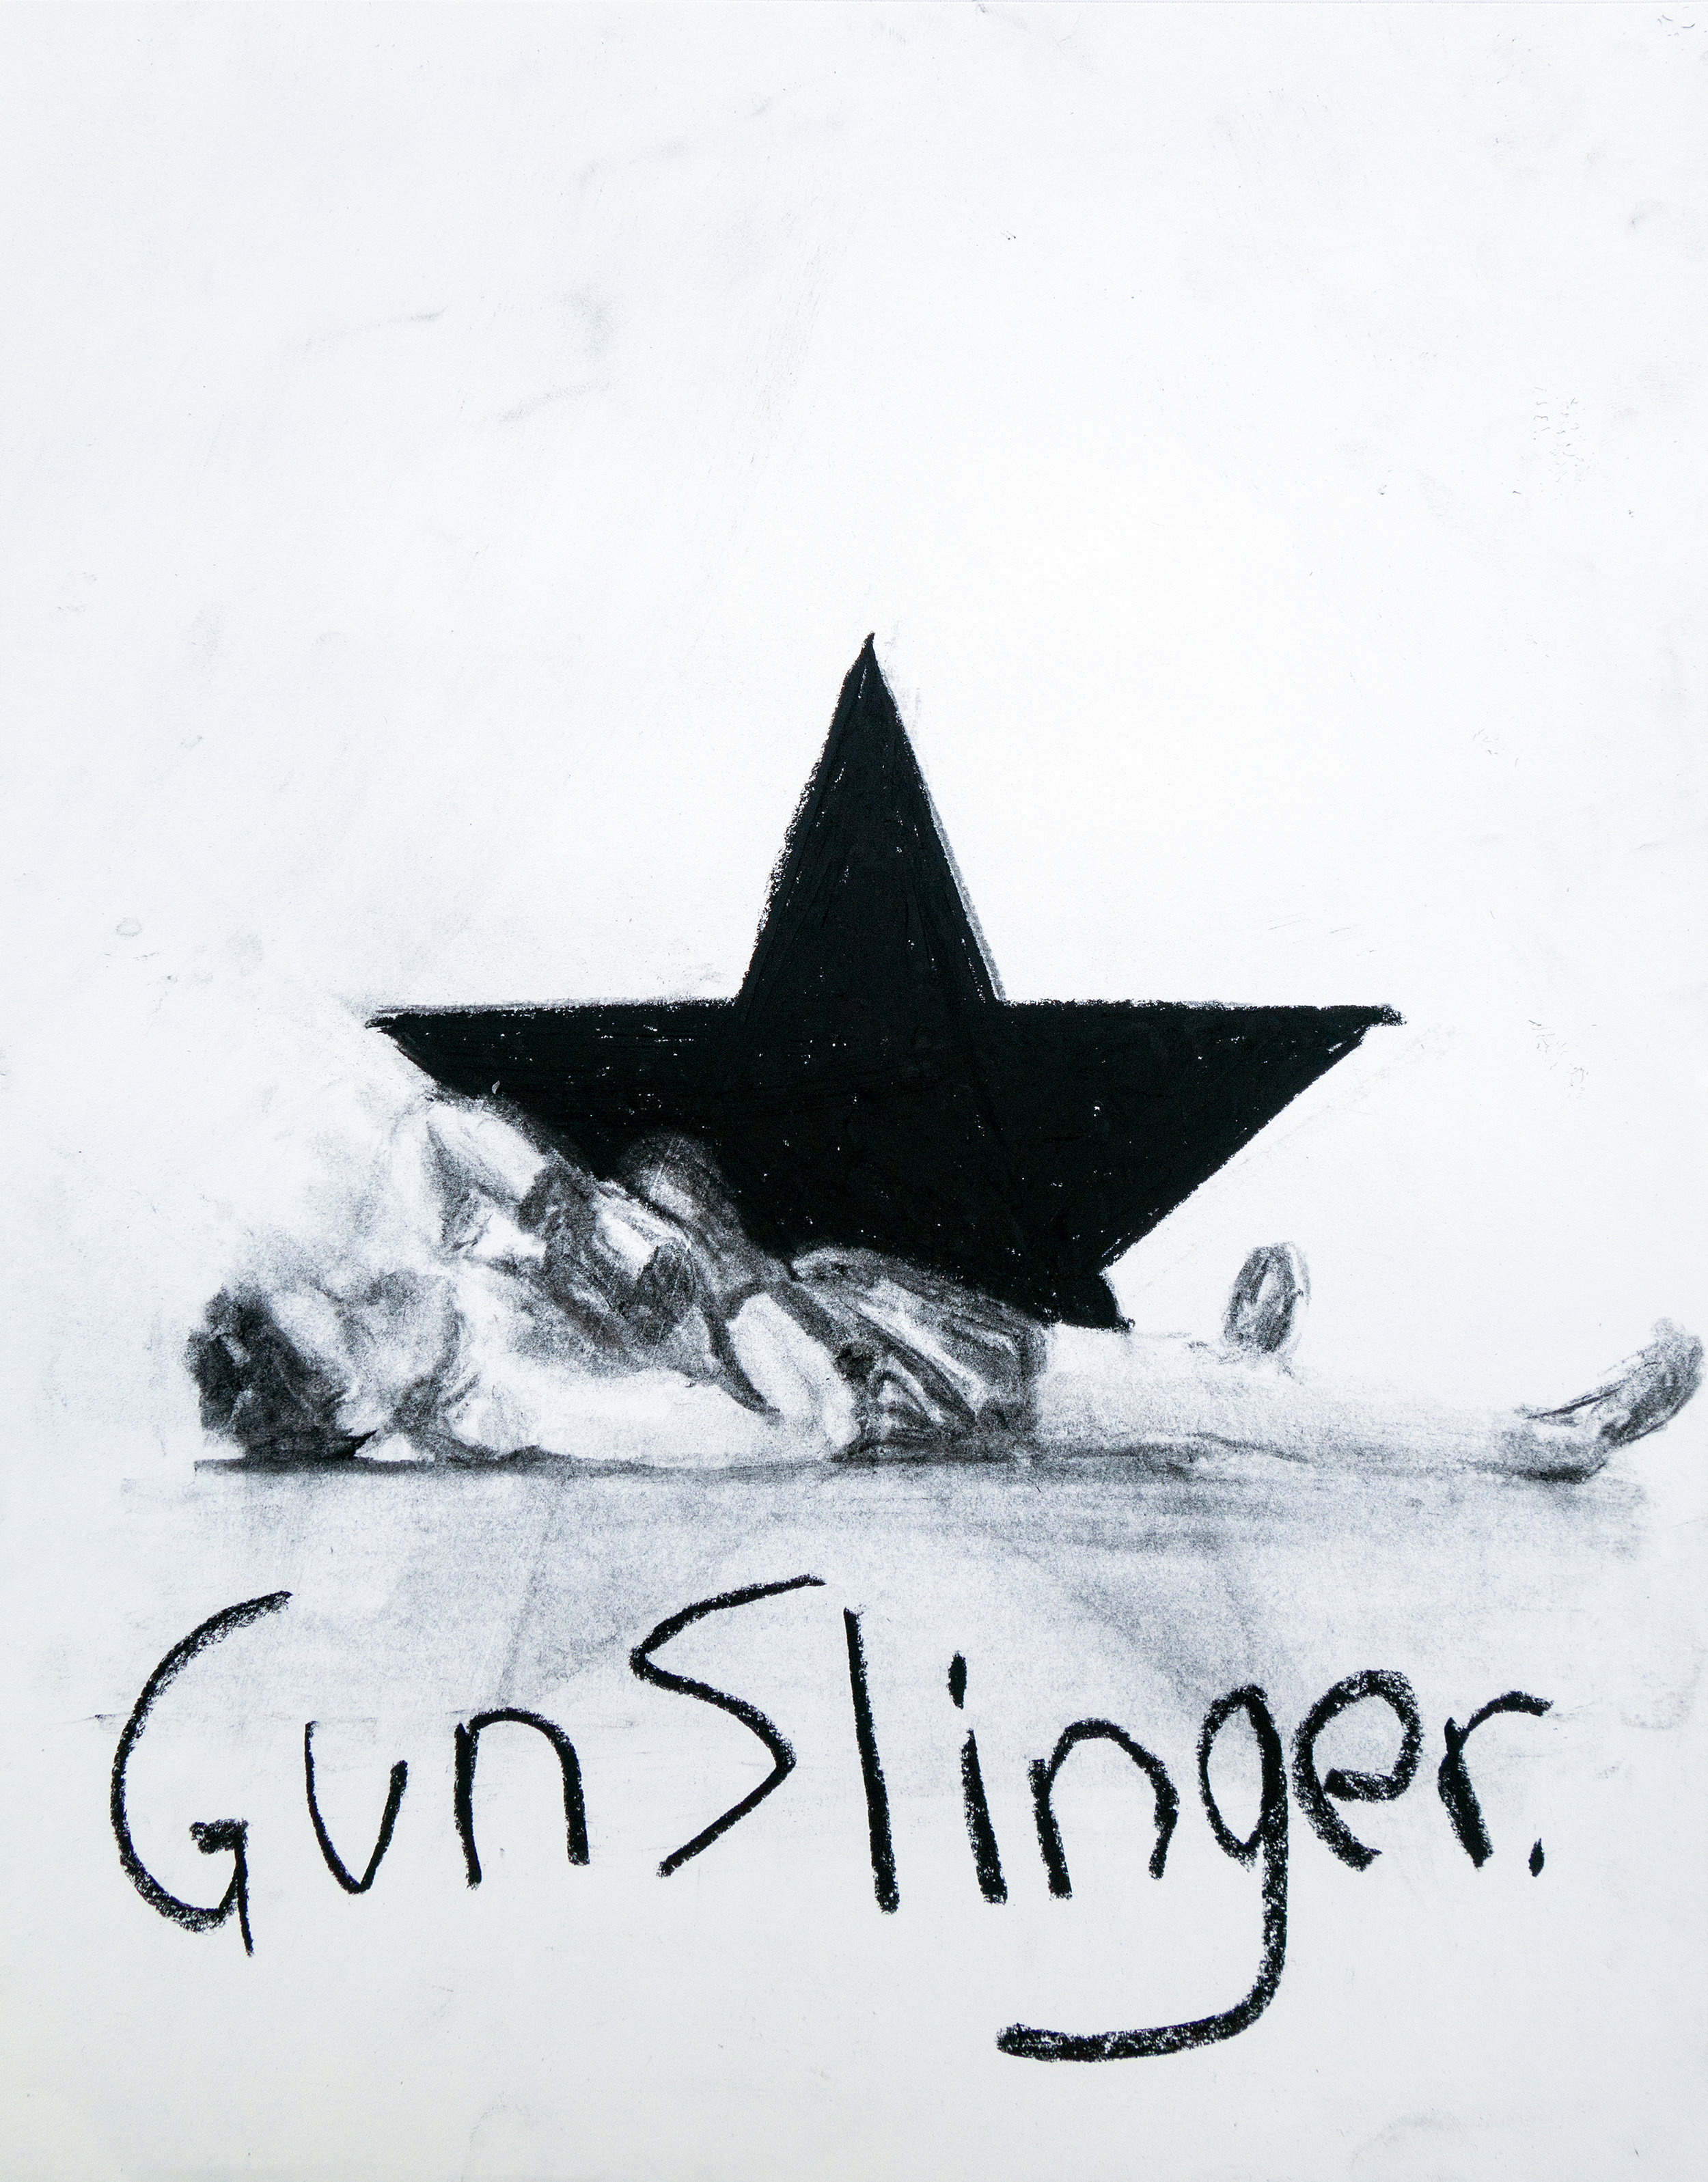 Gunslinger<br>charcoal on paper<br>11 x 14 inches